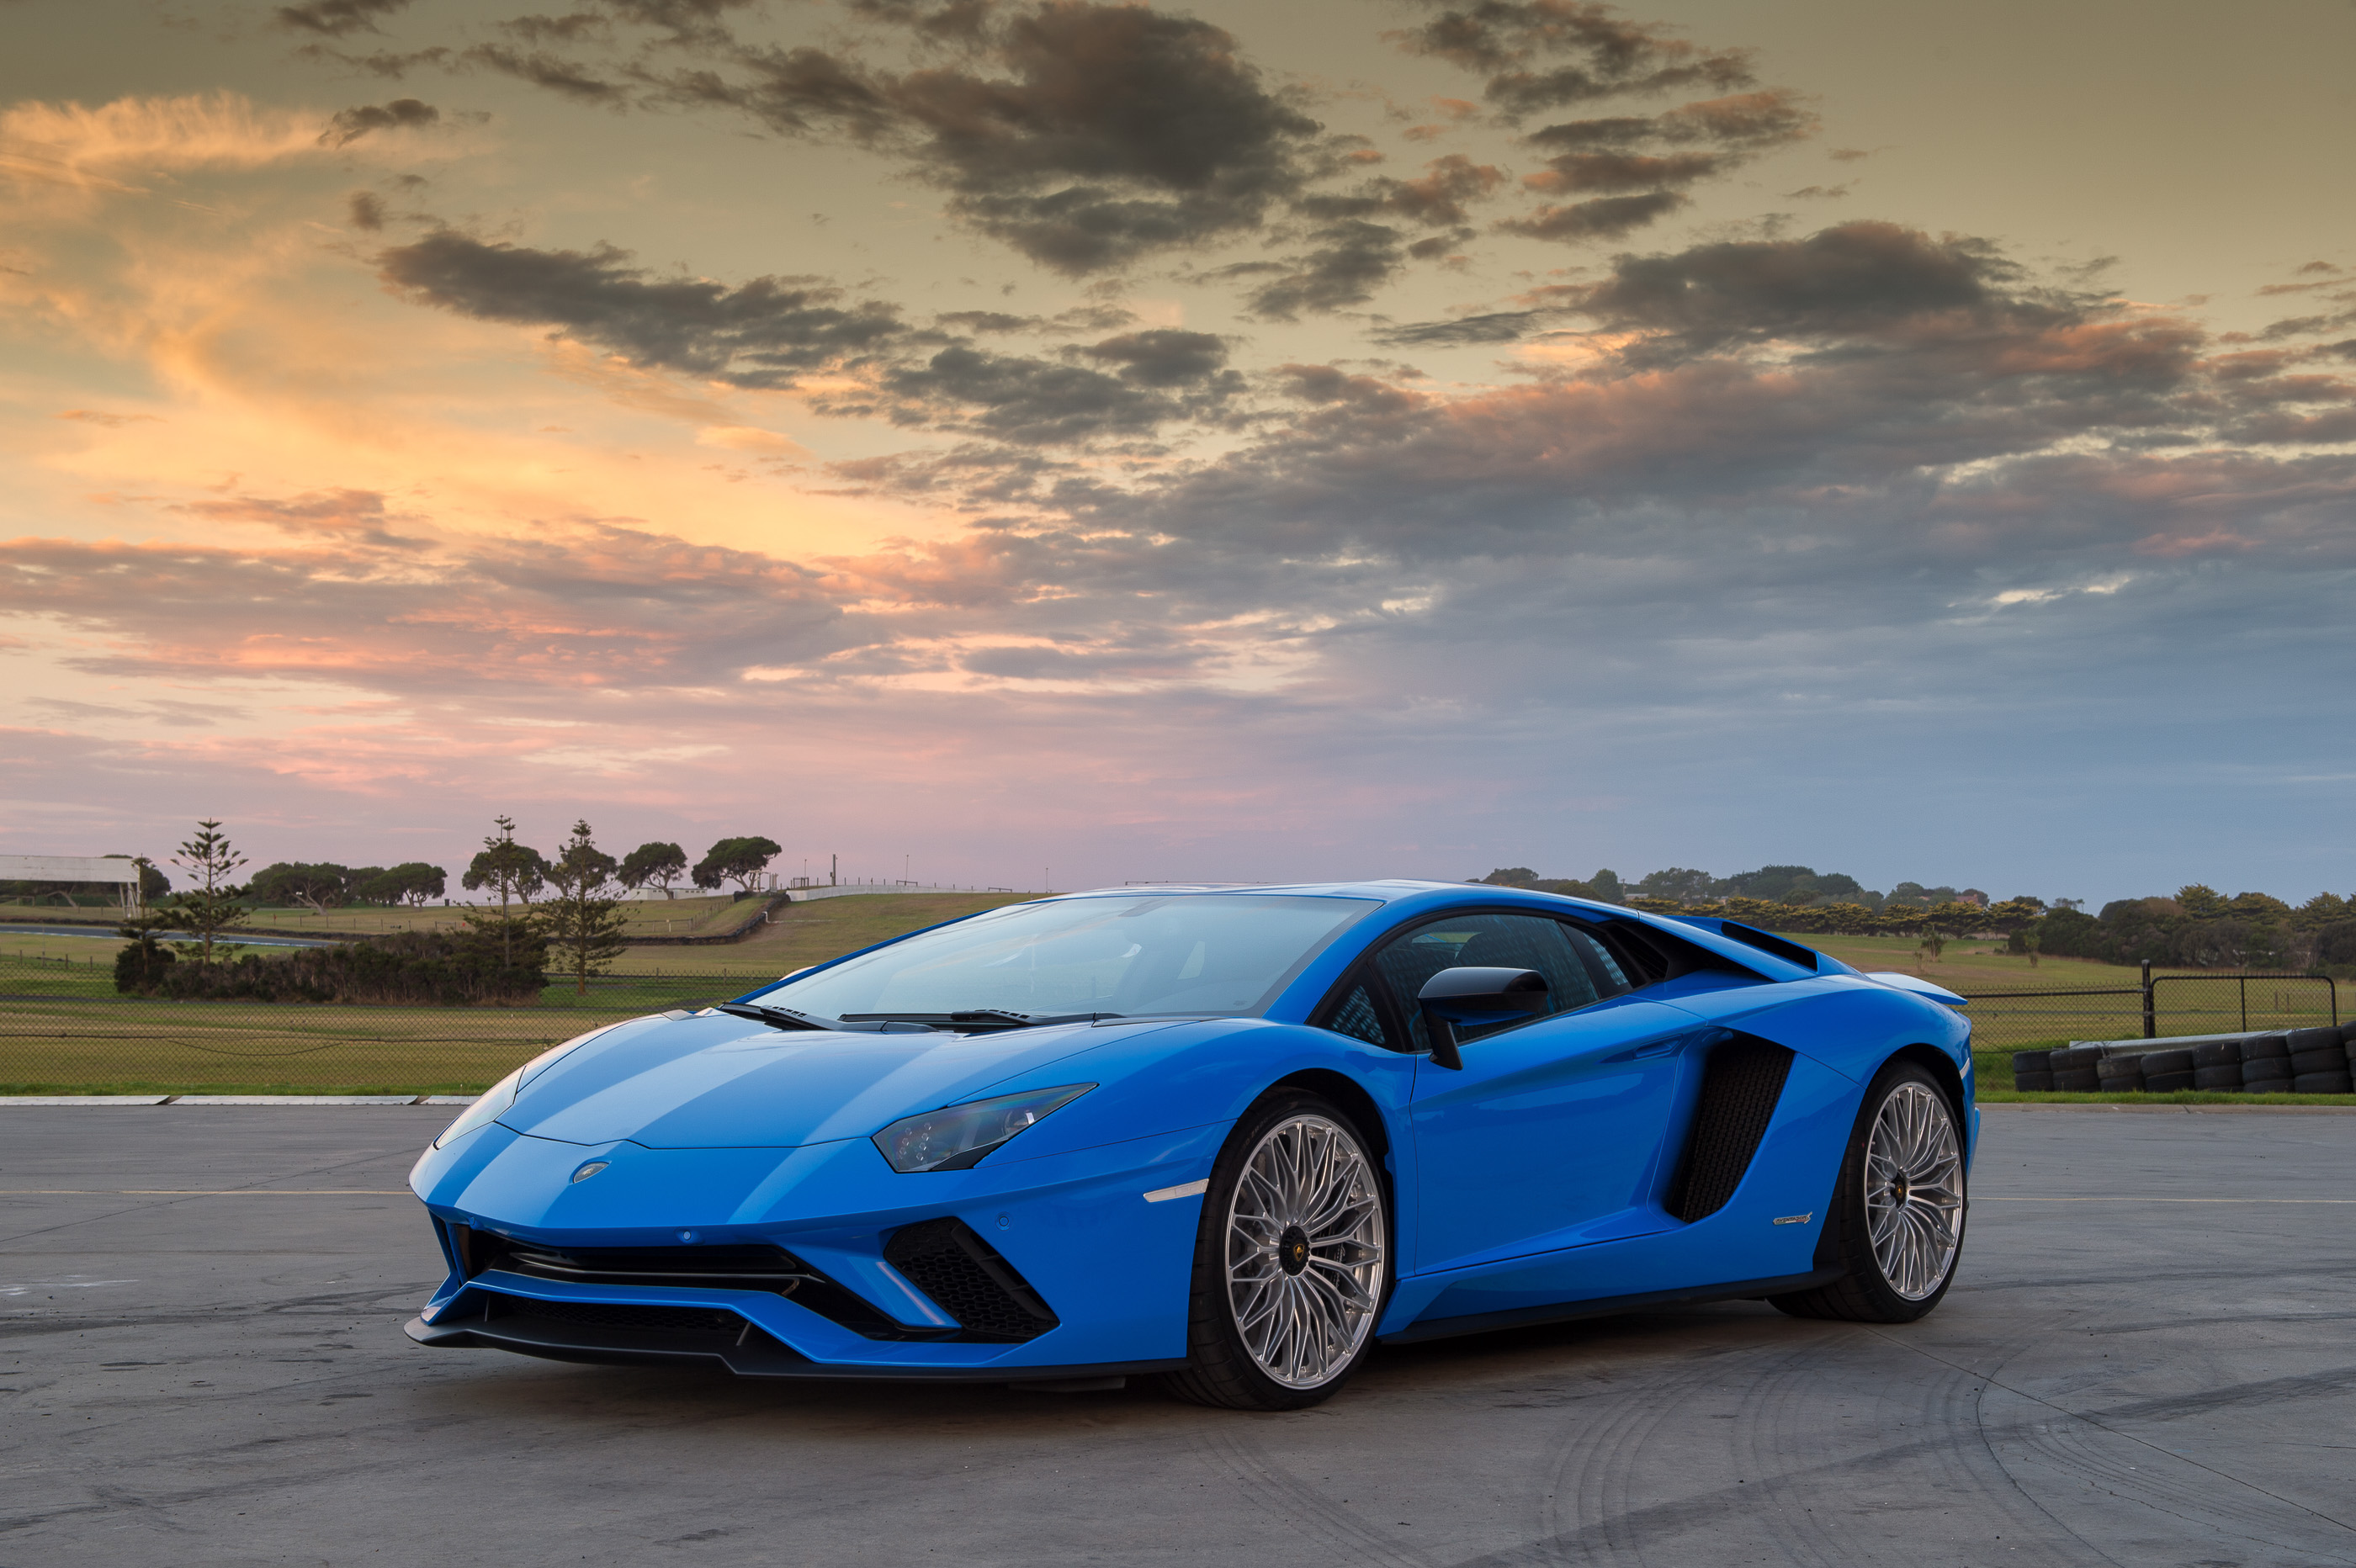 2017 Lamborghini Aventador Coupe Pictures Photo Gallery